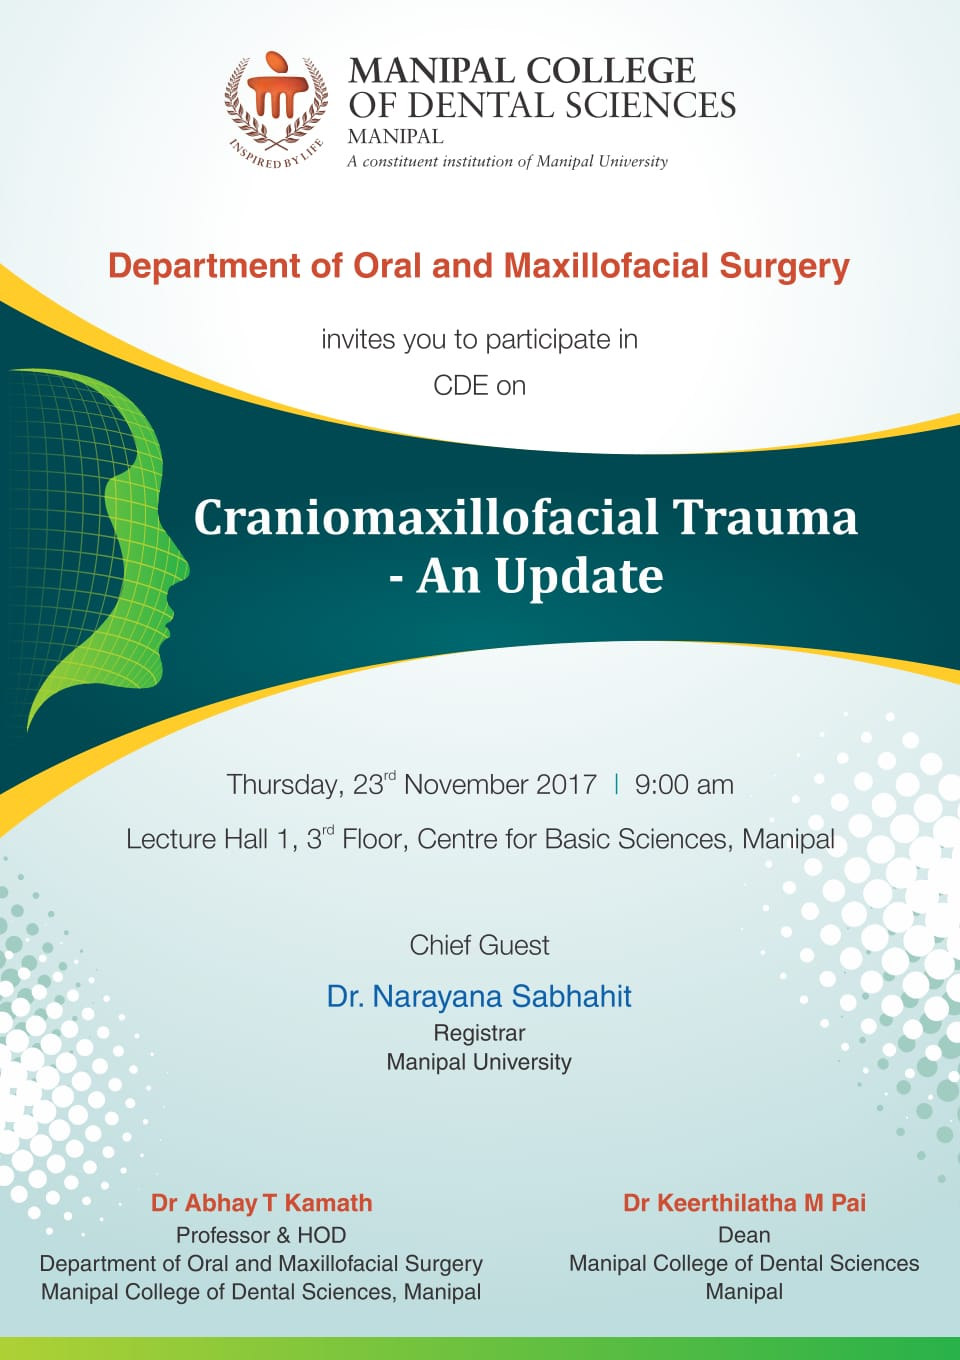 CPD on Craniomaxillofacial Trauma- An Update